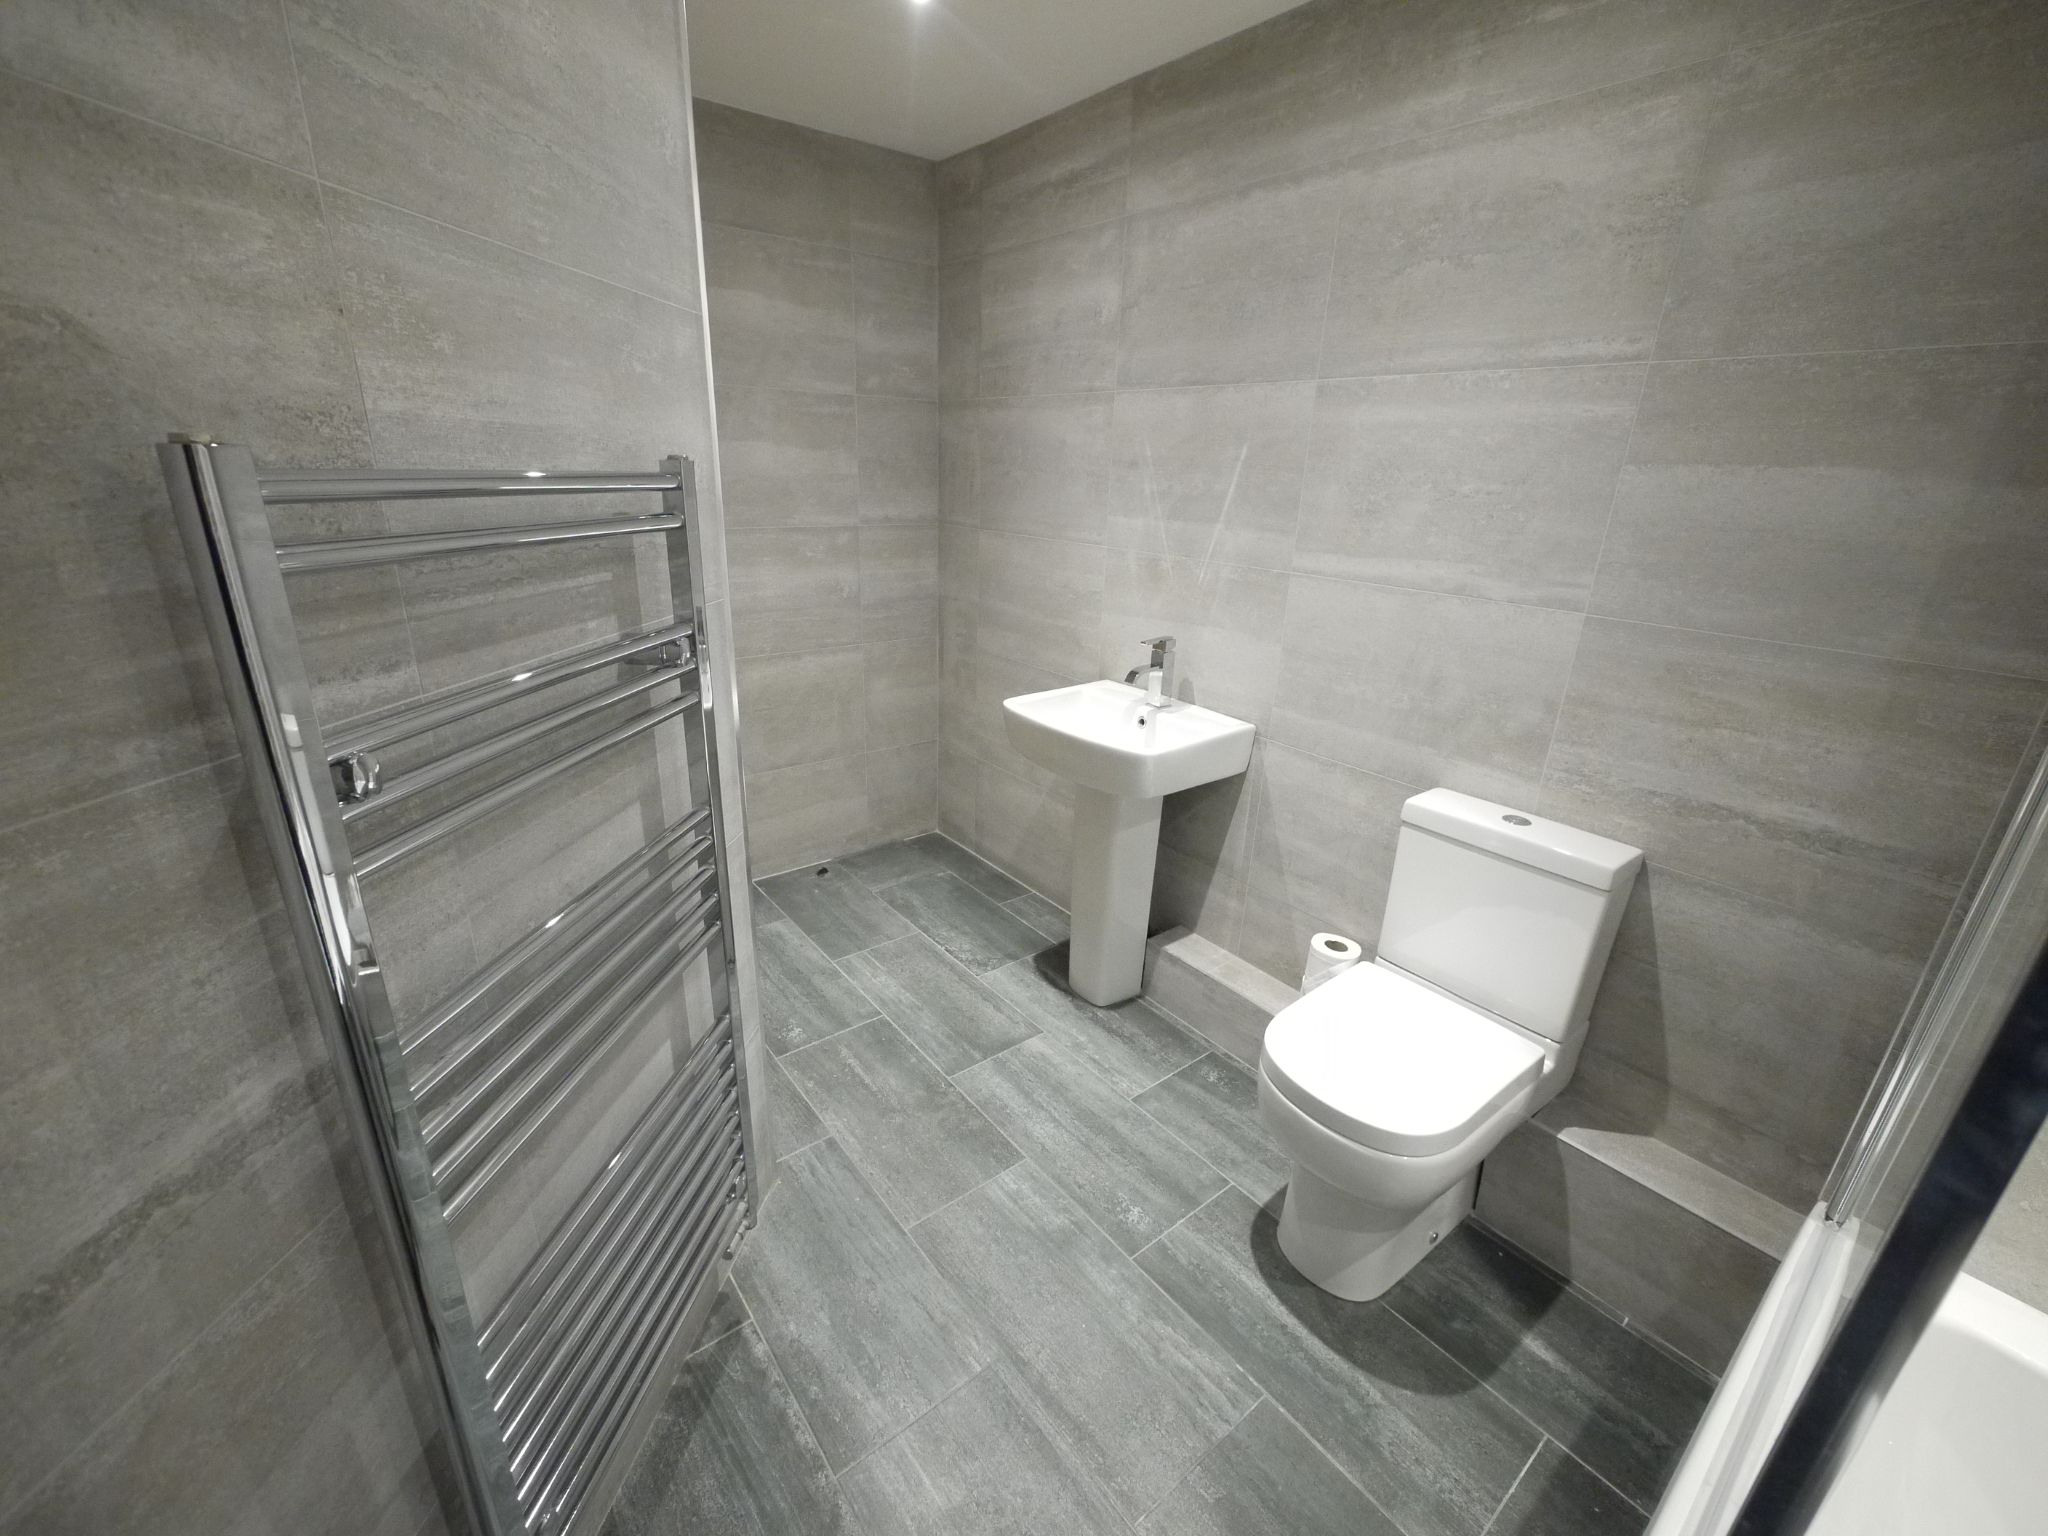 3 bedroom detached house For Sale in Brighouse - Bathroom 3.